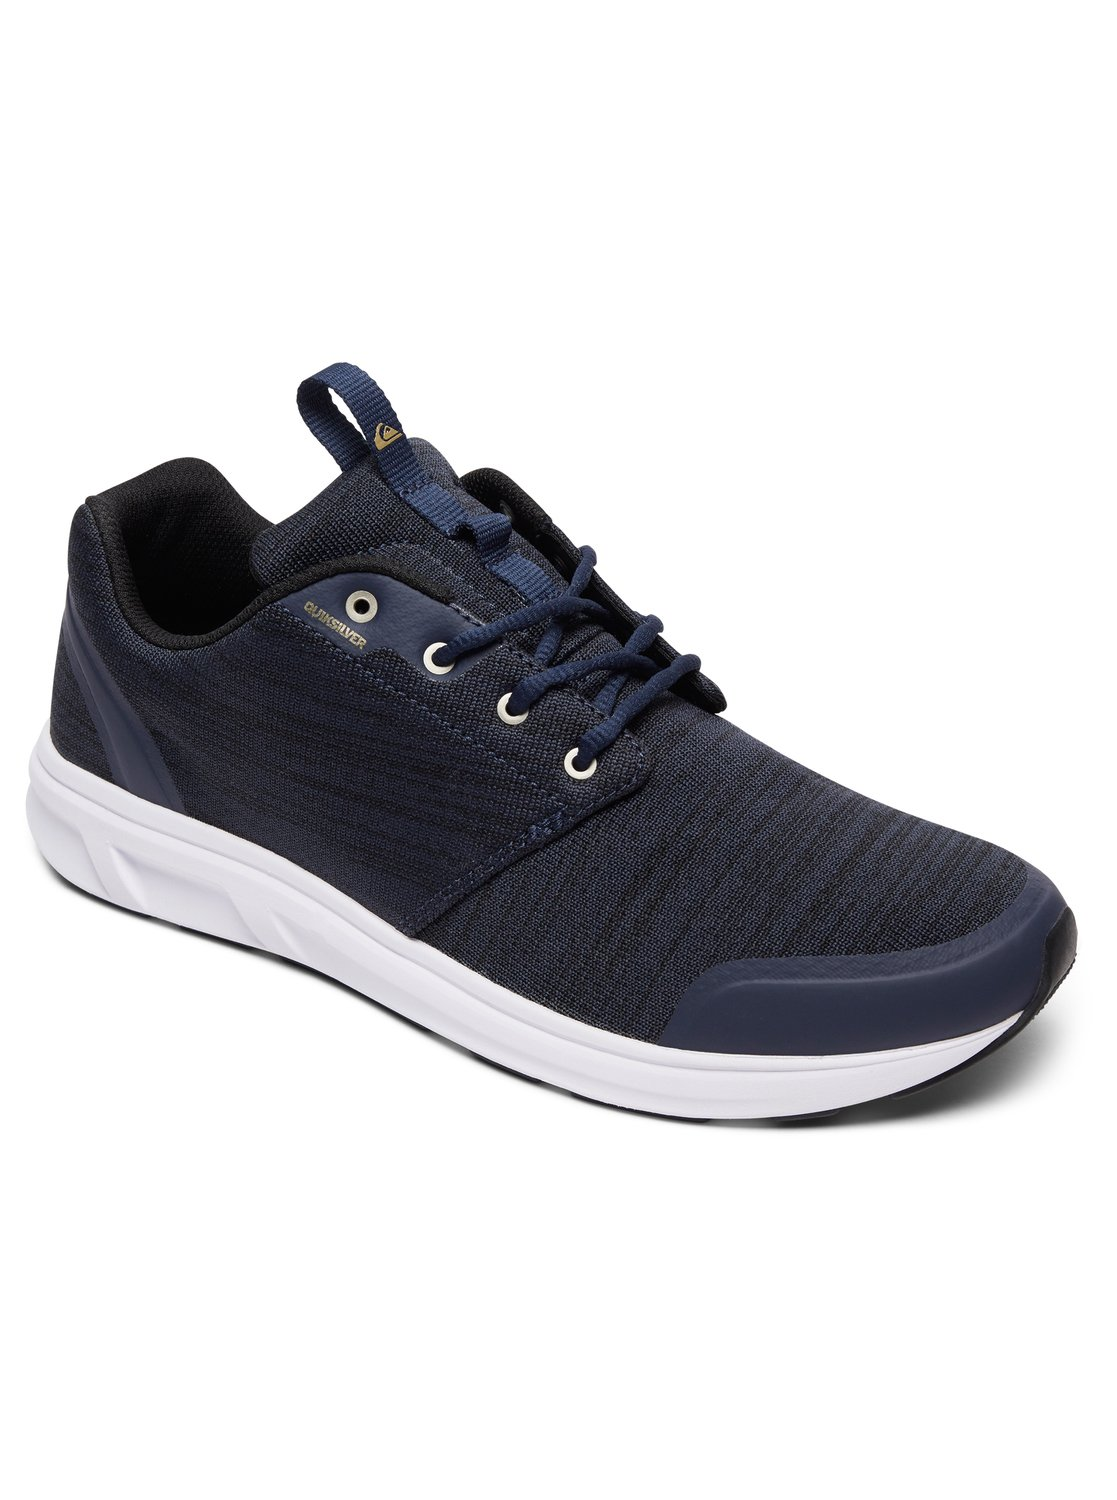 Quiksilver Voyage Textile Chaussure Homme  - Chaussures Baskets basses Homme